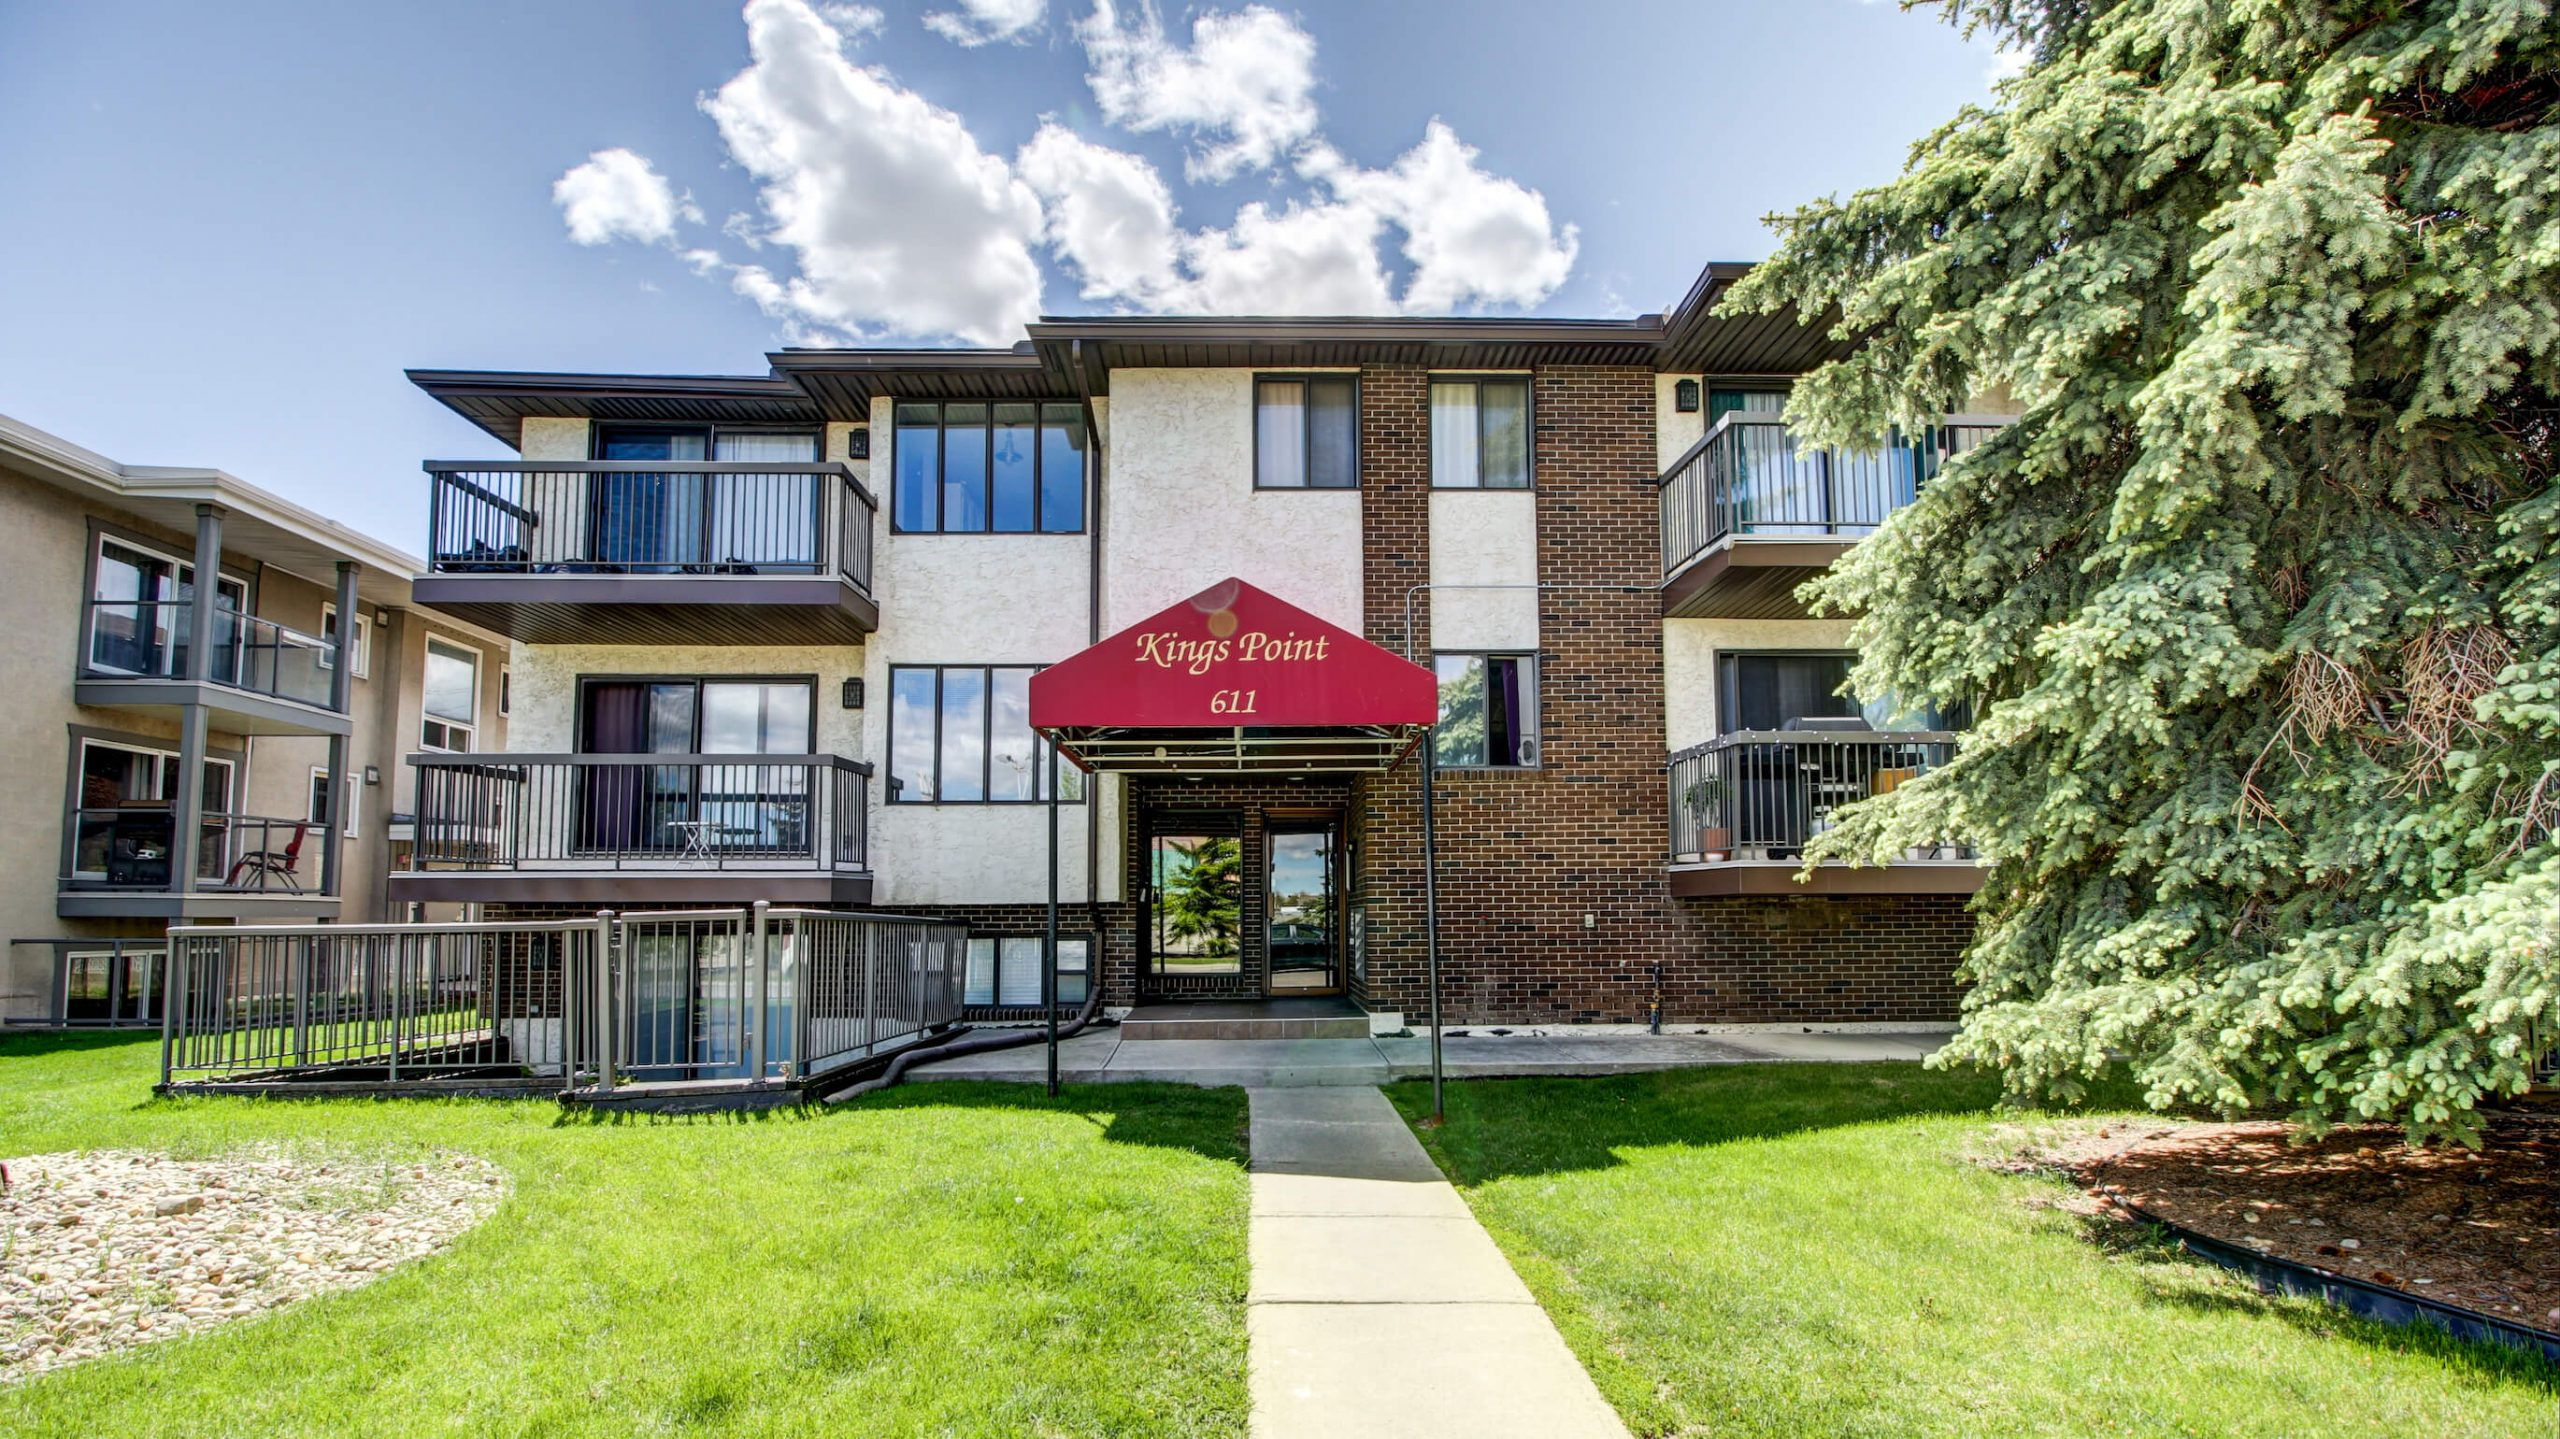 2 Bedroom Condo Kingsland Calgary For Sale by Plintz Real Estate